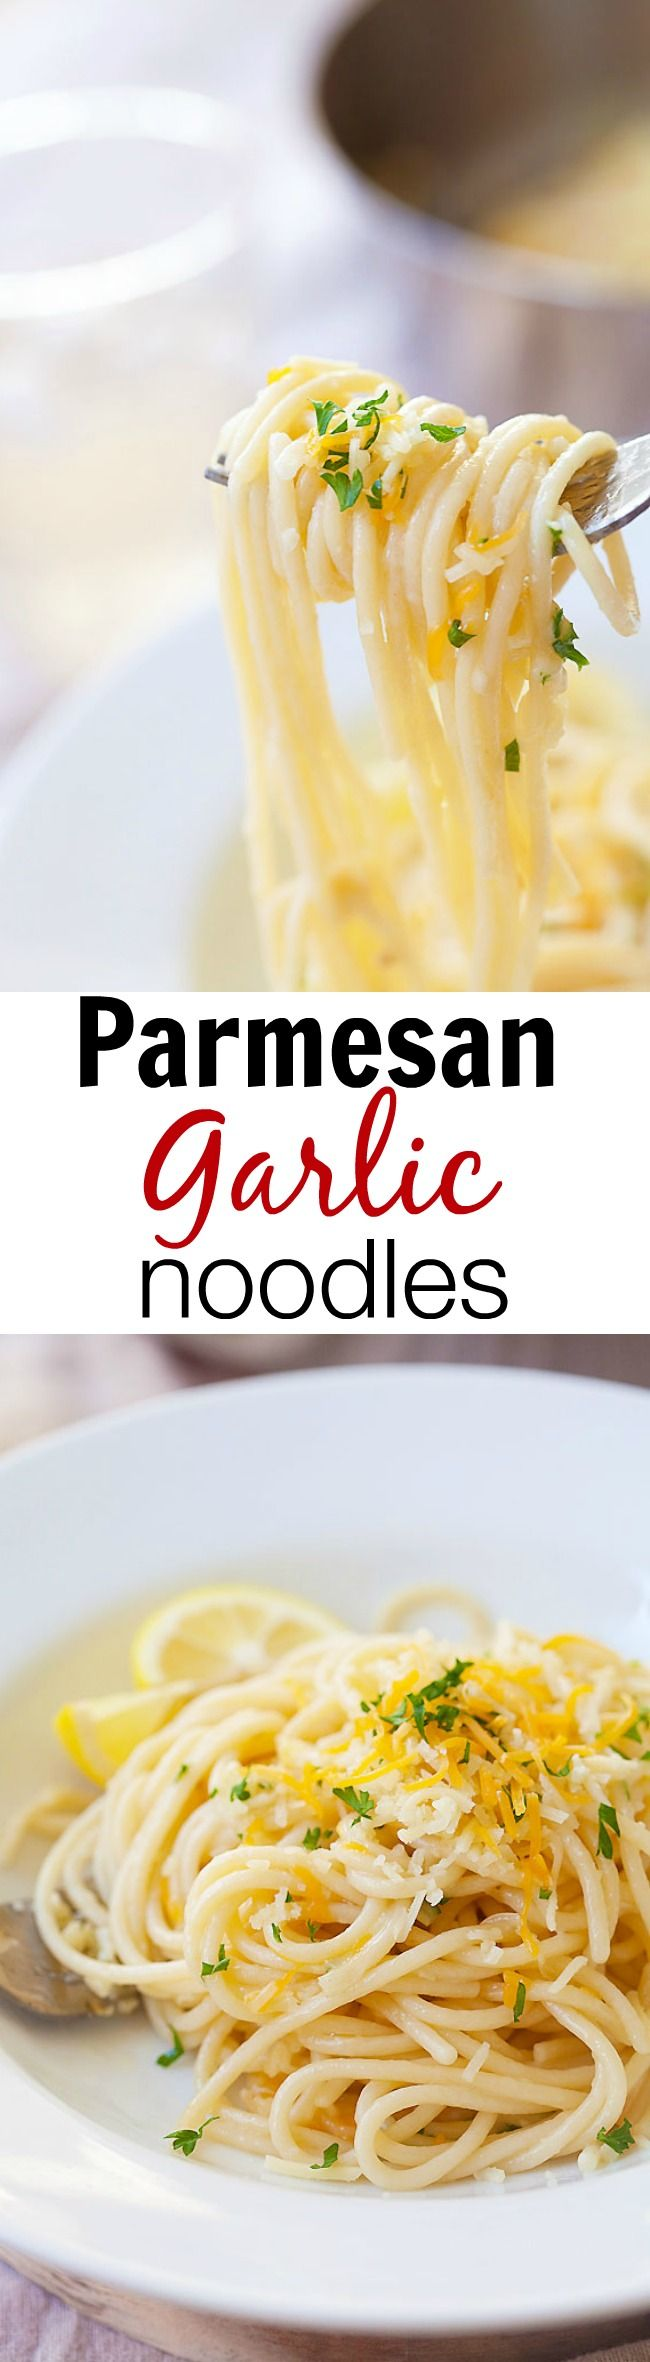 Parmesan Garlic Noodles - quick & easy spaghetti recipe with garlic and Parmesan cheese. This Parmesan Garlic Noodles recipe takes 20 mins | rasamalaysia.com